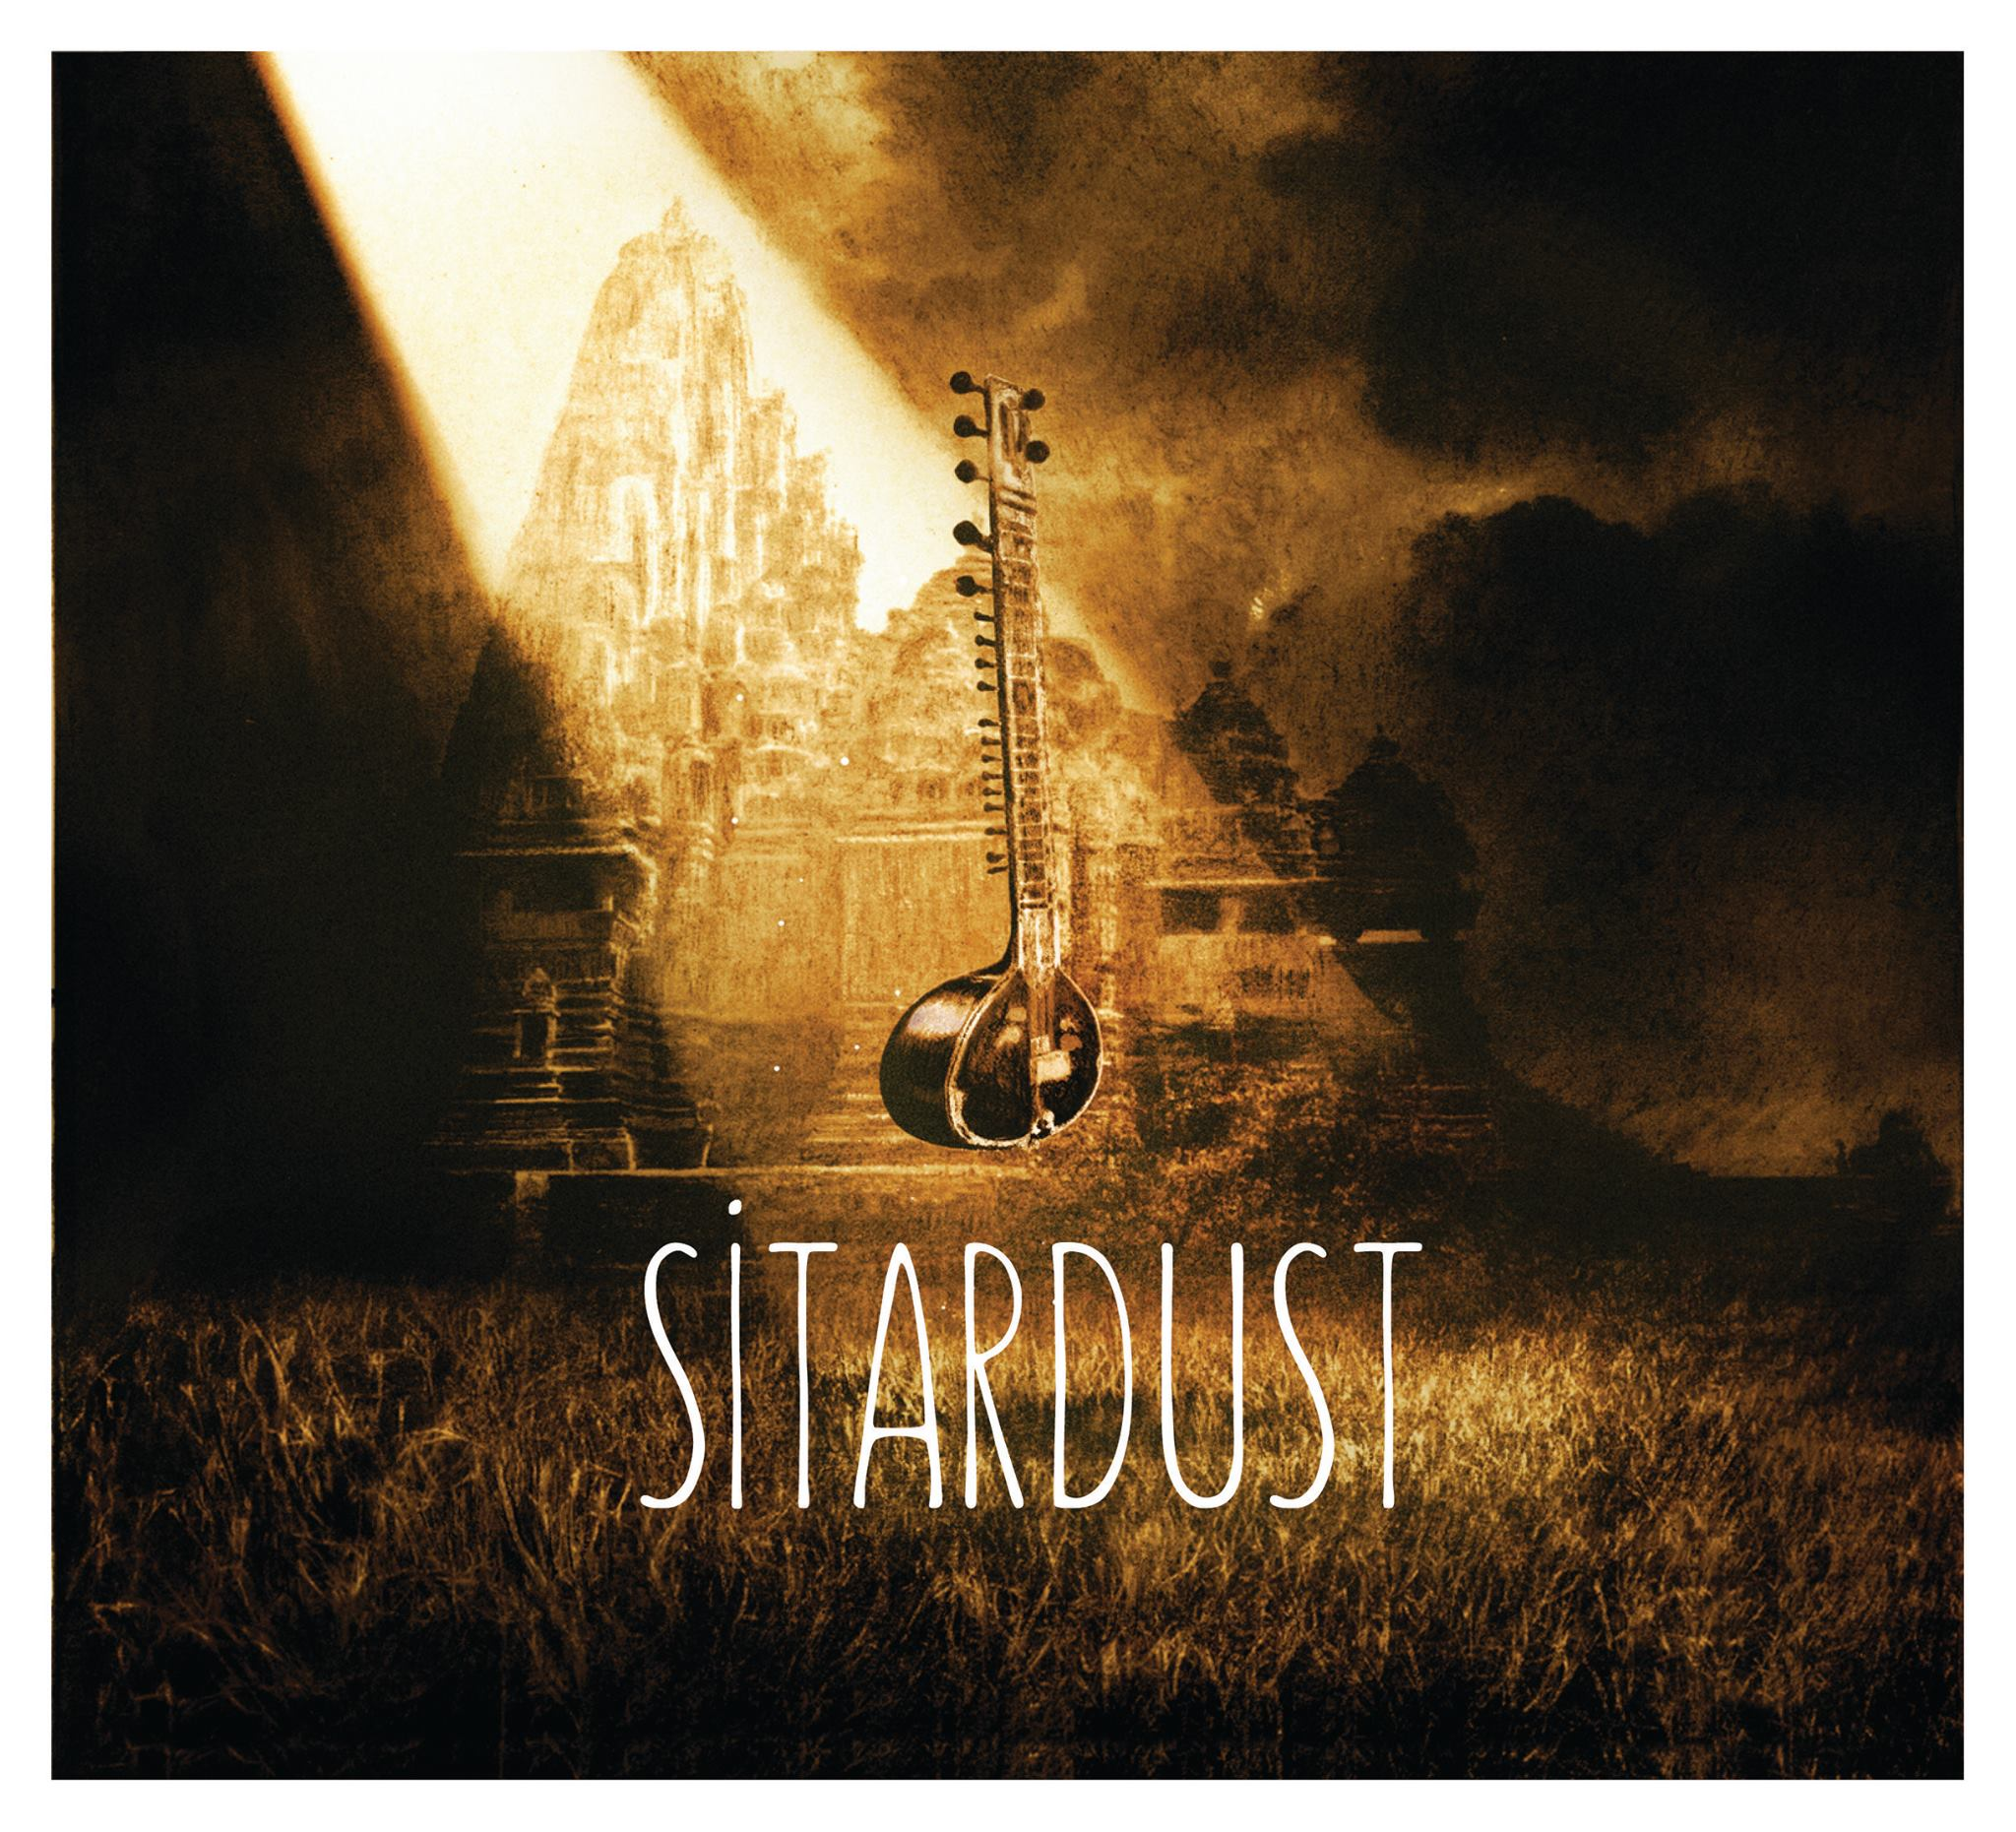 000 Sitardust Affiche by Romain Renard